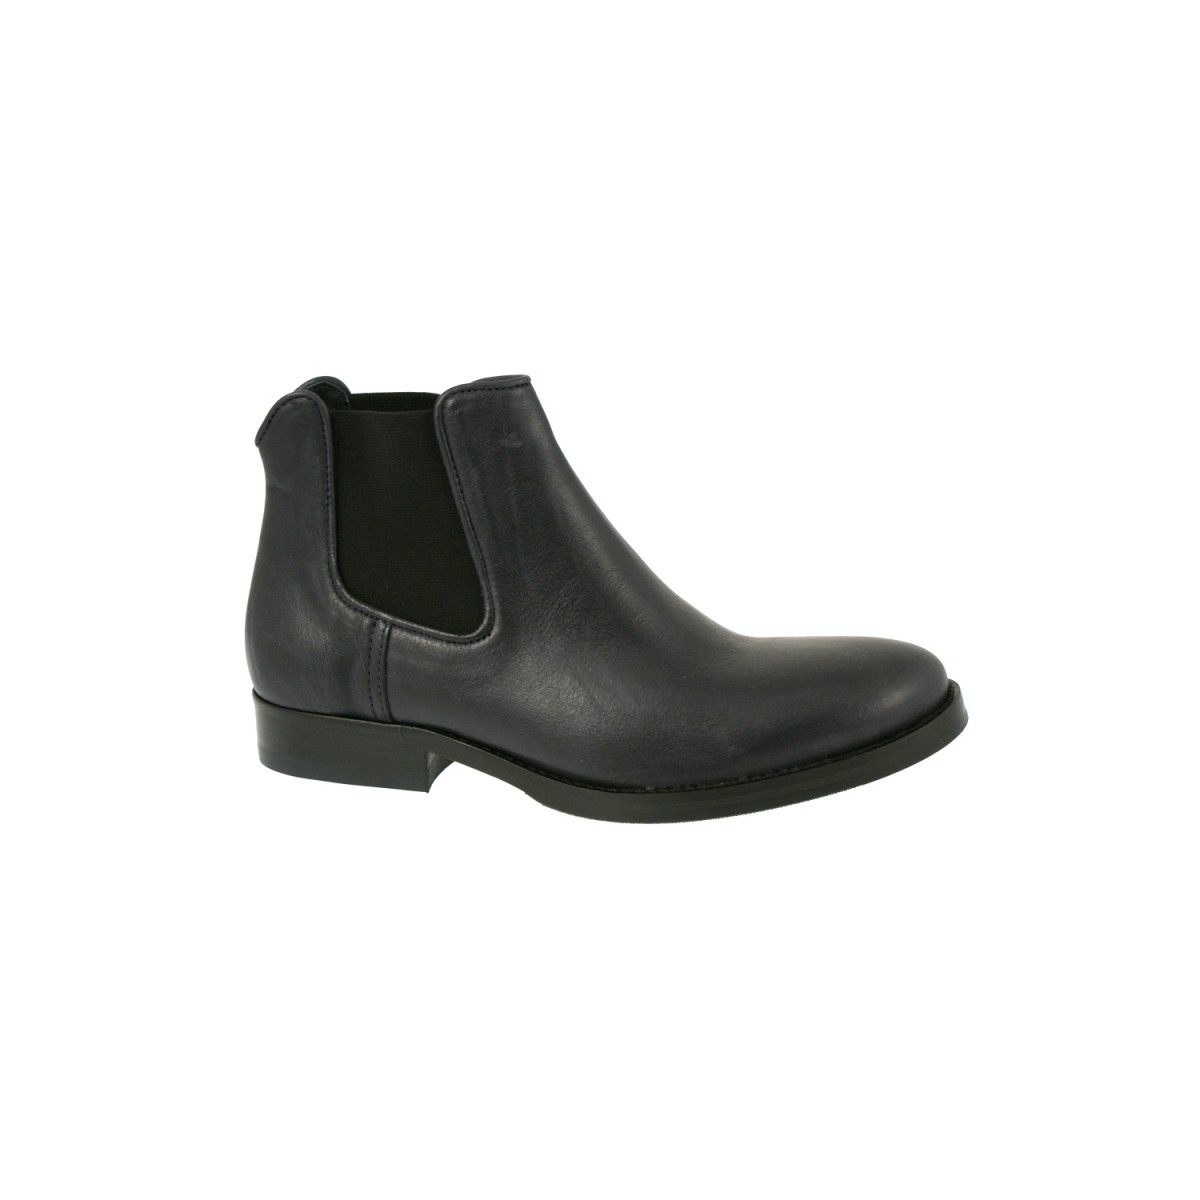 Mentor W7179 Chelsea Boot Navy Leather-35